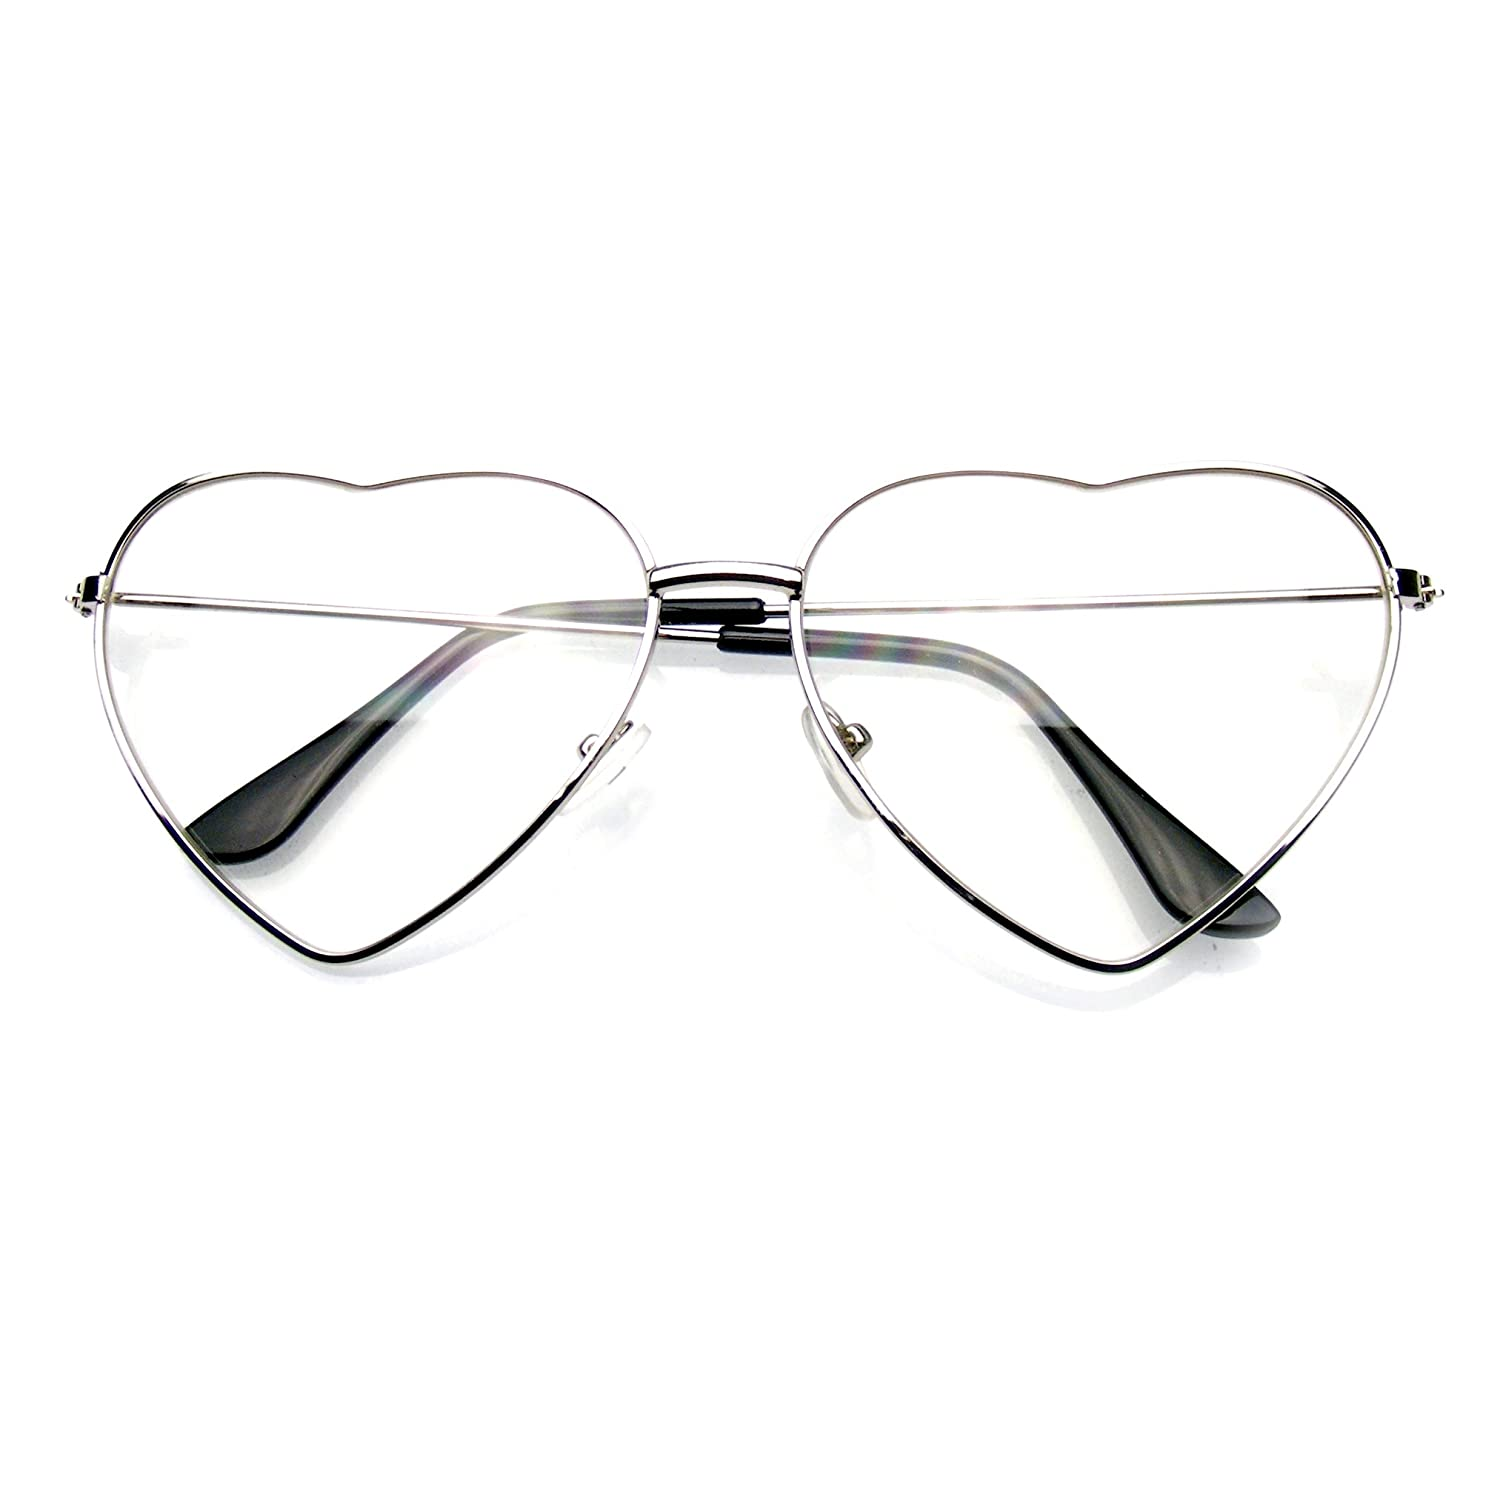 a73110e9624 Amazon.com  Metal Frame Heart Shape Sunglasses Cute Lovely Women s Clear  Glasses (Clear Nerd Gold)  Clothing